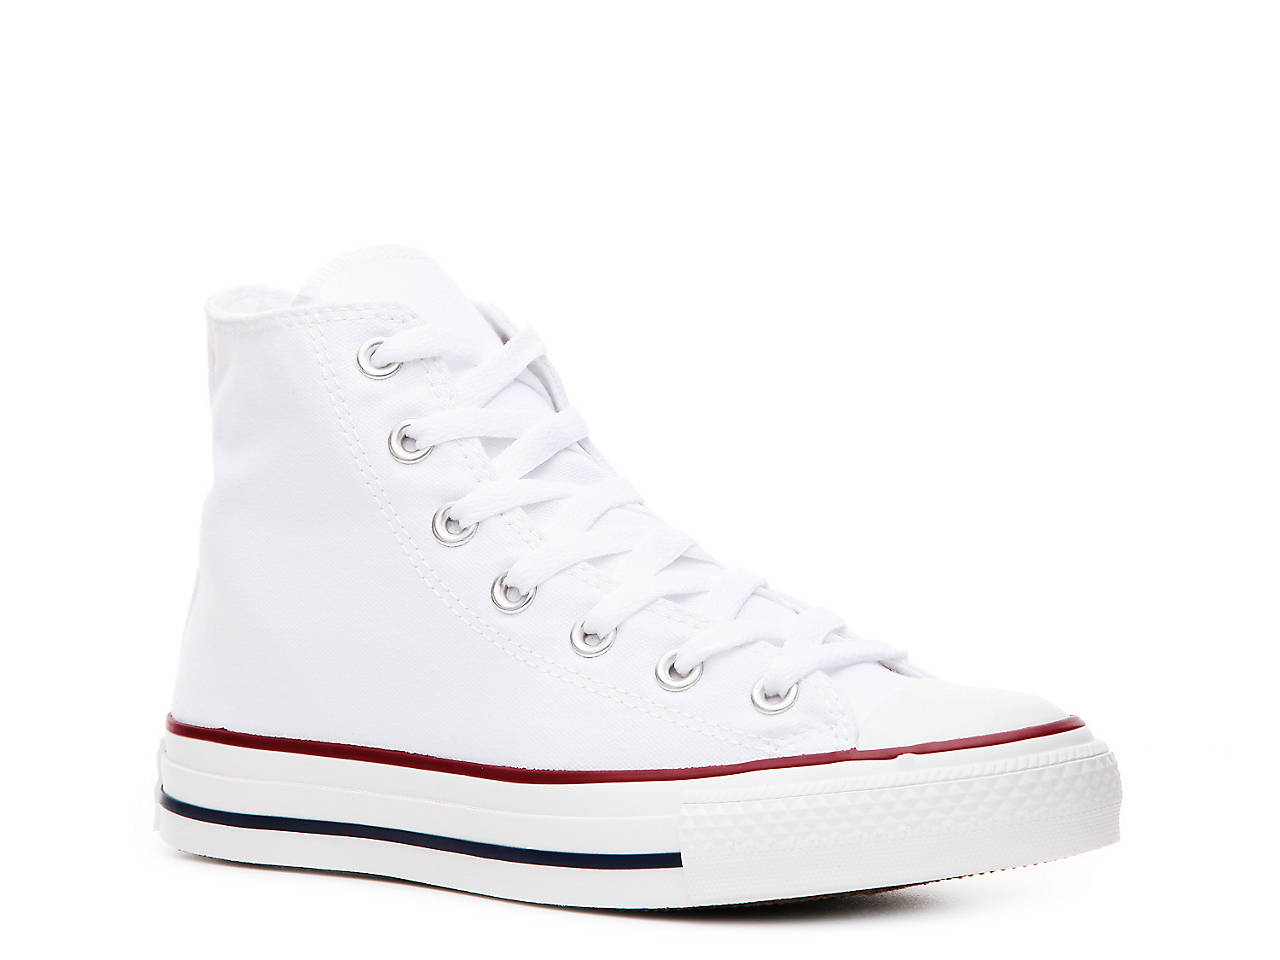 e3a7b26c691f7b Converse Chuck Taylor All Star High-Top Sneaker - Women s Women s ...